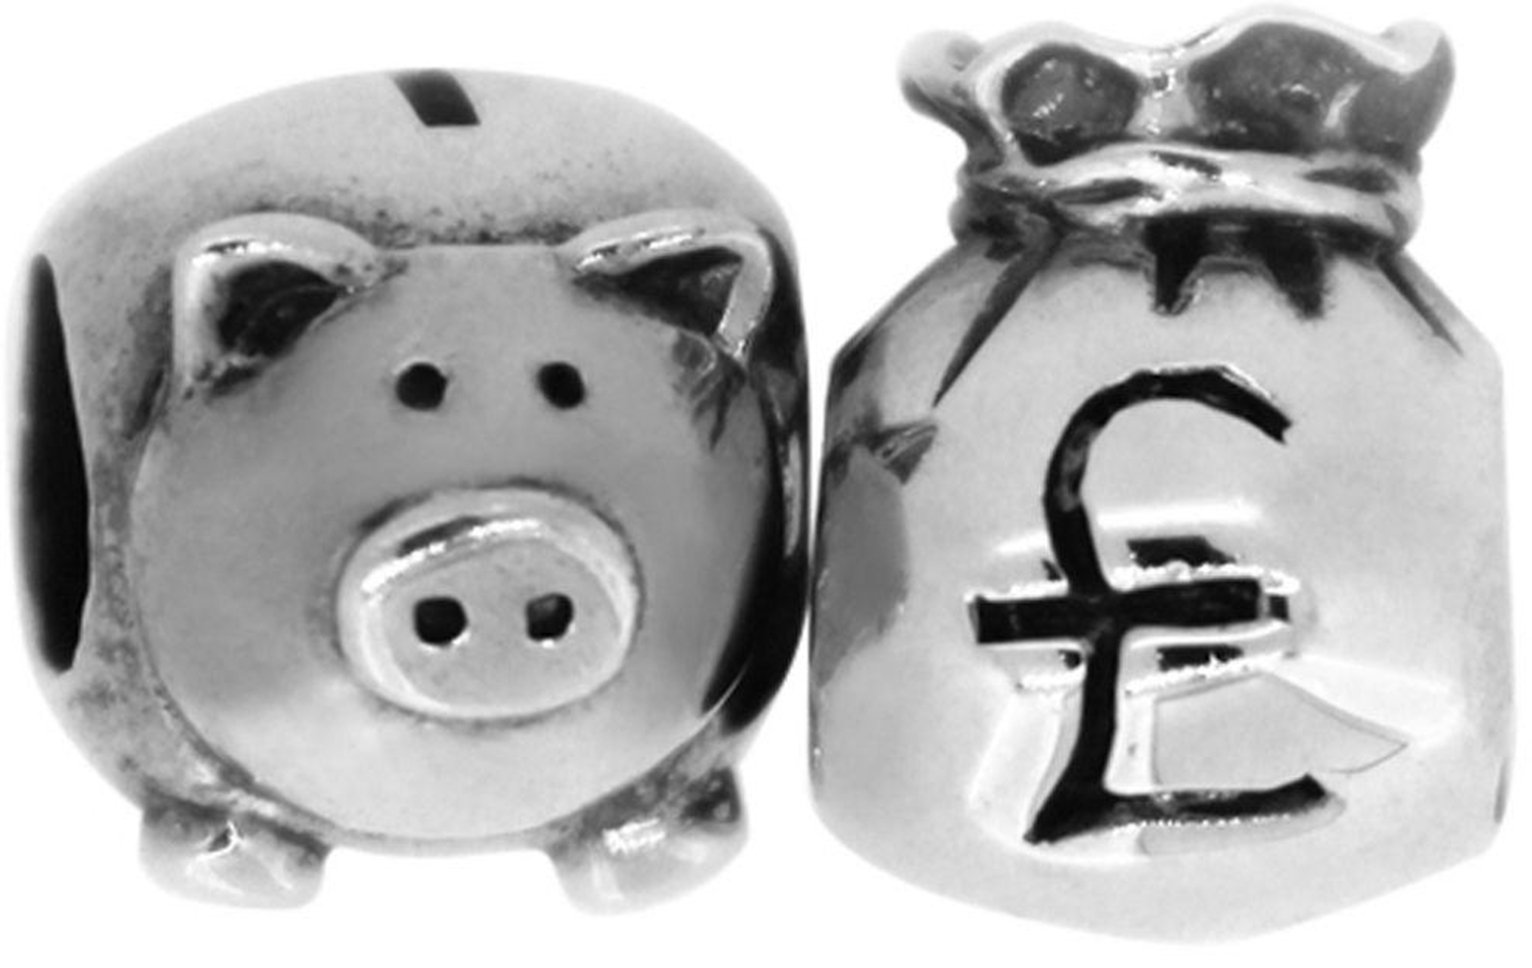 Link Up S.Silver Piggy Bank and Money Bag Charms - Set of 2.